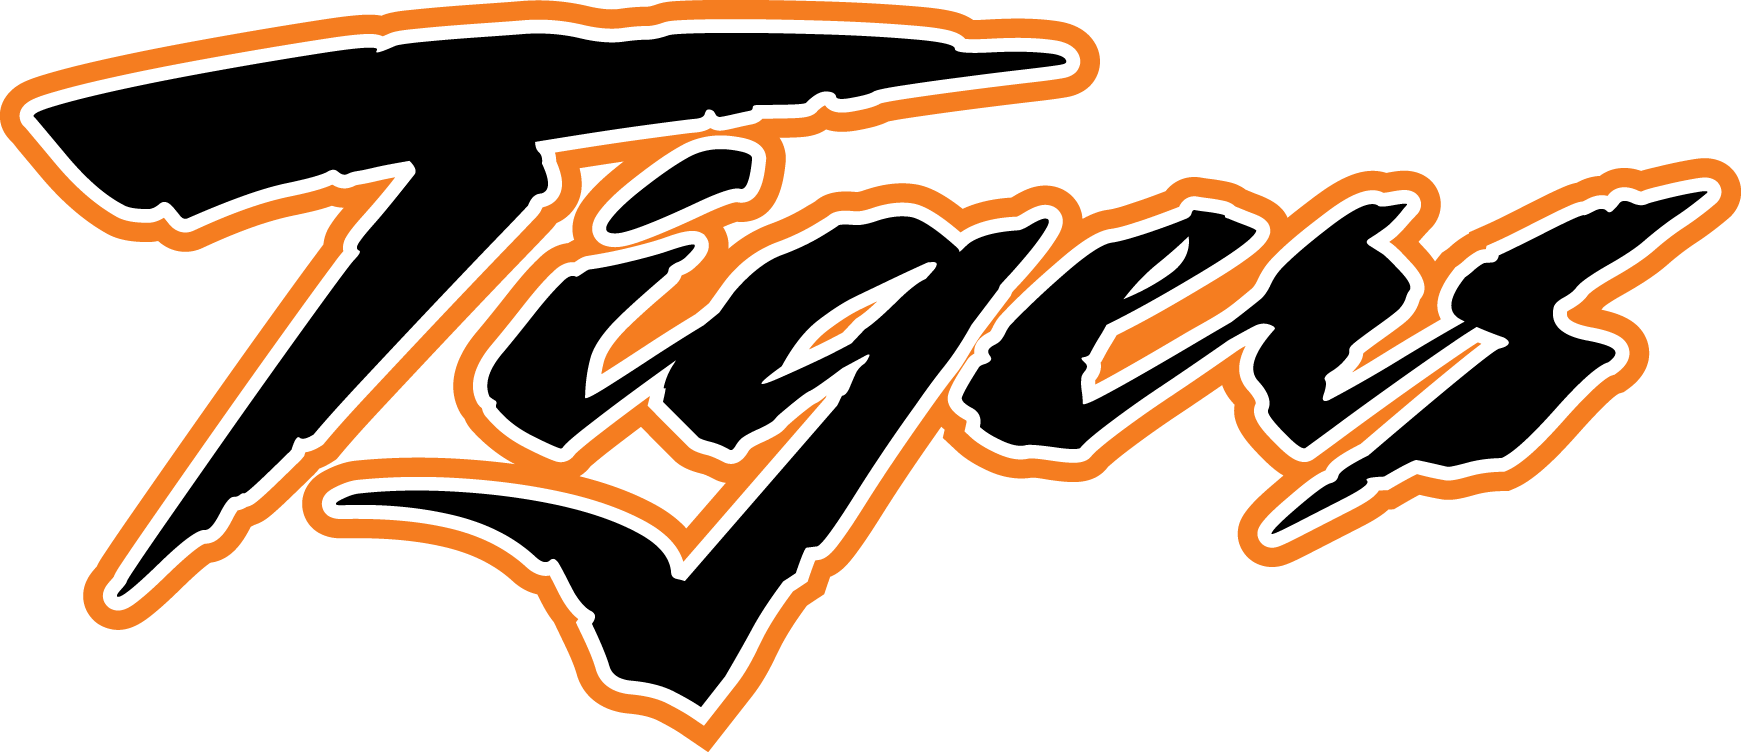 logo file of the colored version for princeton tigers